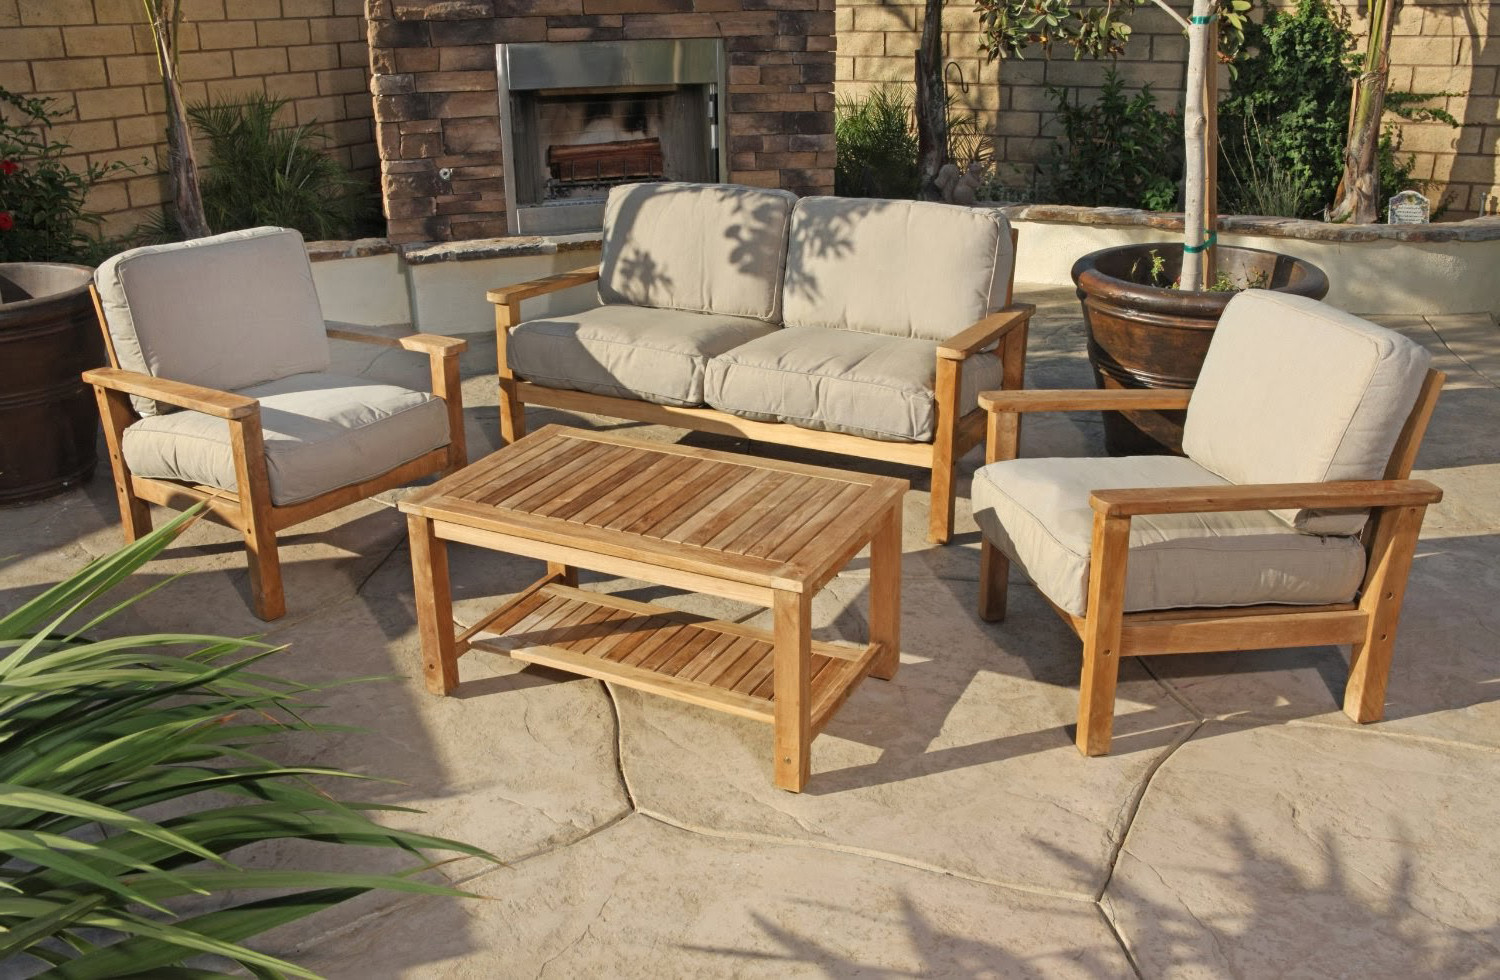 Christmas Tree Shop Patio Furniture  Lowes Patio Furniture Clearance Sams Club Covers Sirio